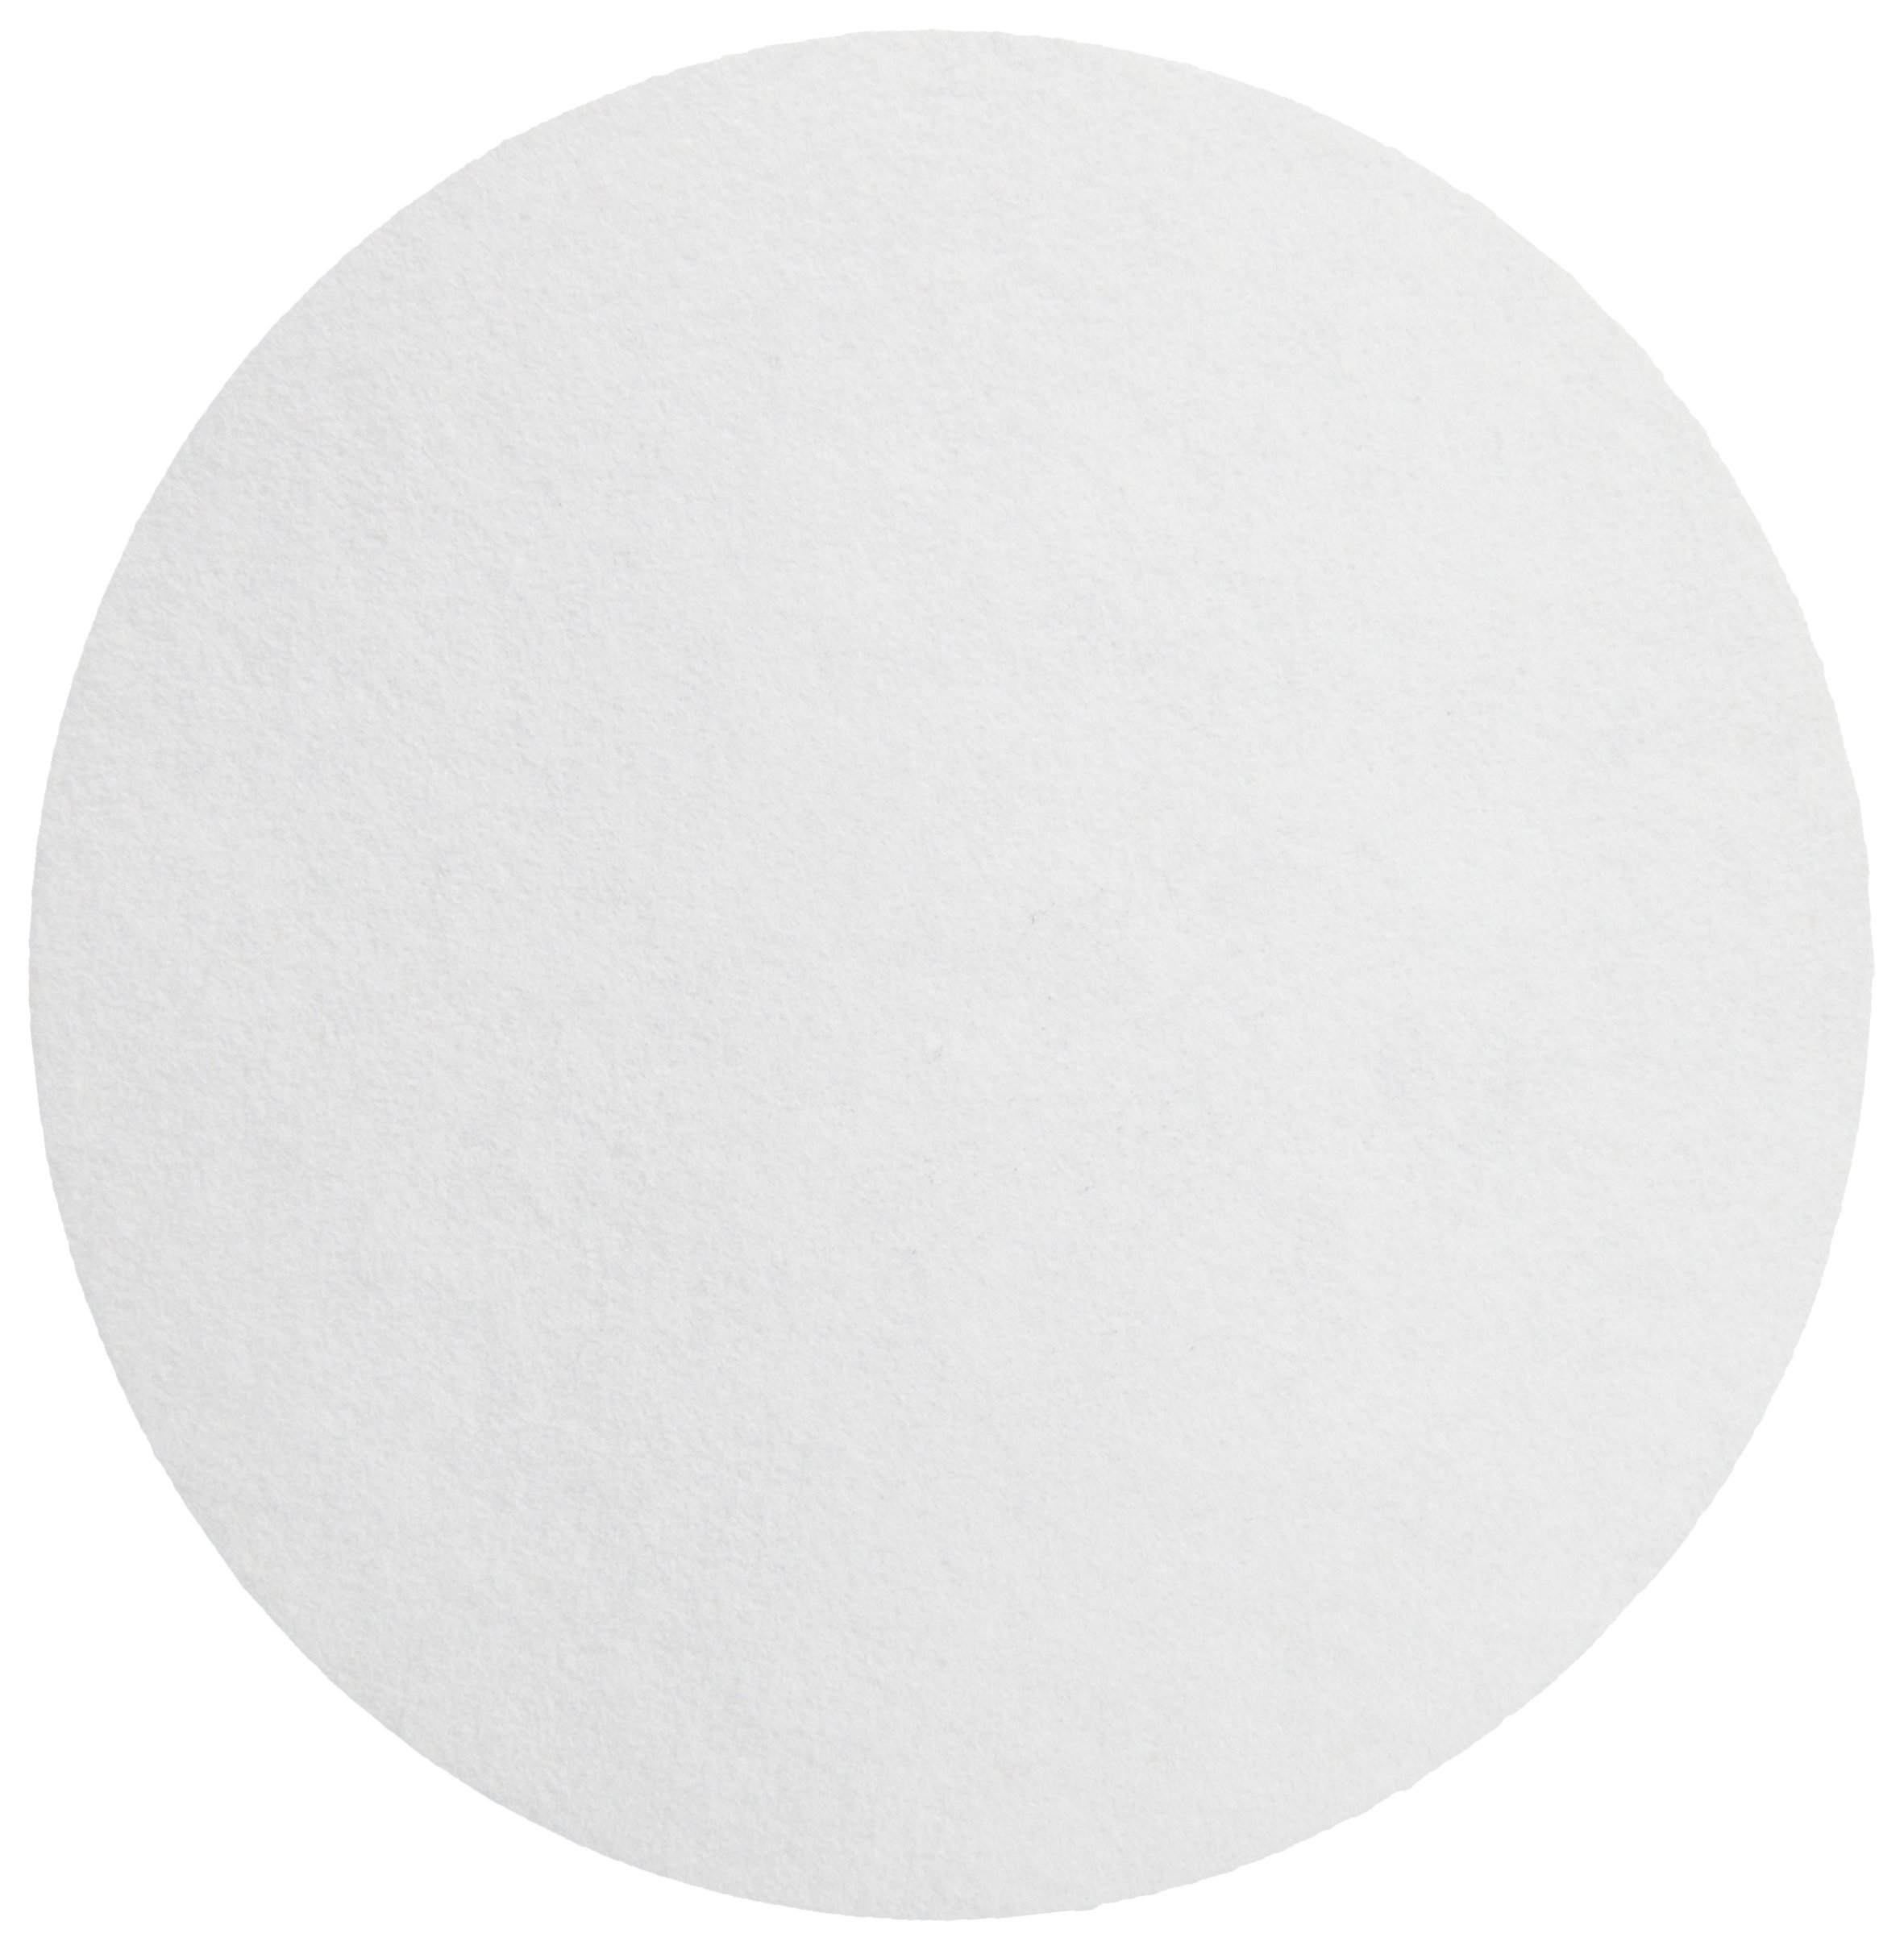 Whatman 1442-042 Quantitative Filter Paper Circles, 2.5 Micron, Grade 42, 42.5mm Diameter (Pack of 100) by Whatman